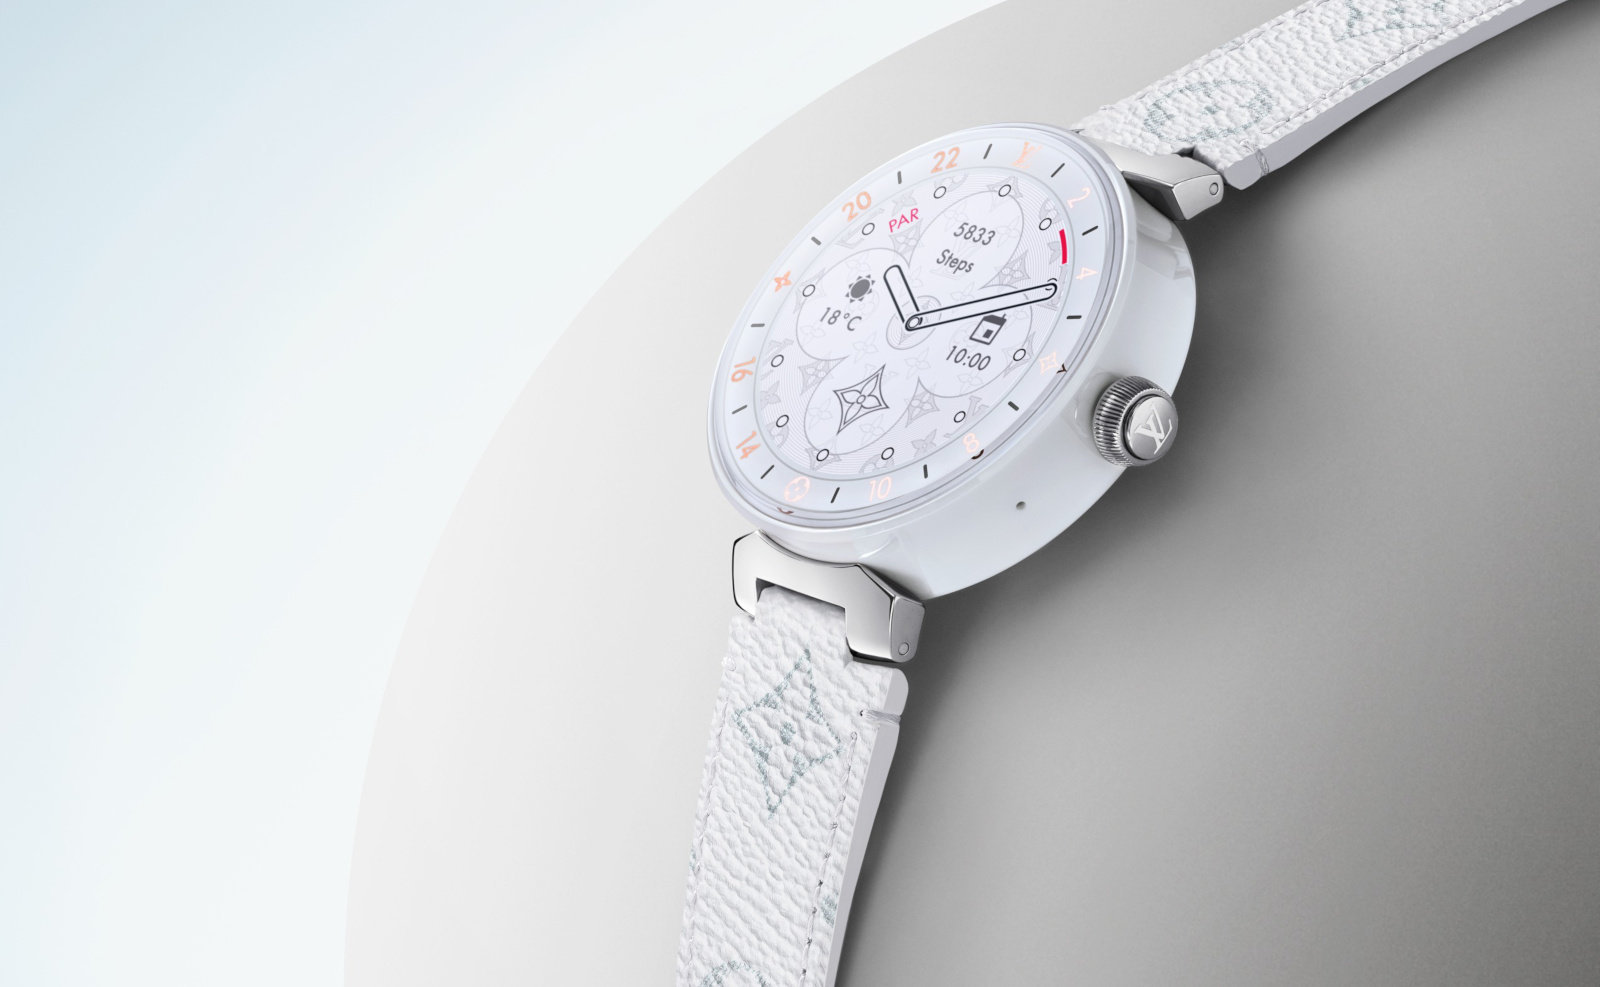 Louis Vuitton Tambour Horizon Smartwatch 2019 Edition Noted With Snapdragon Wear 3100